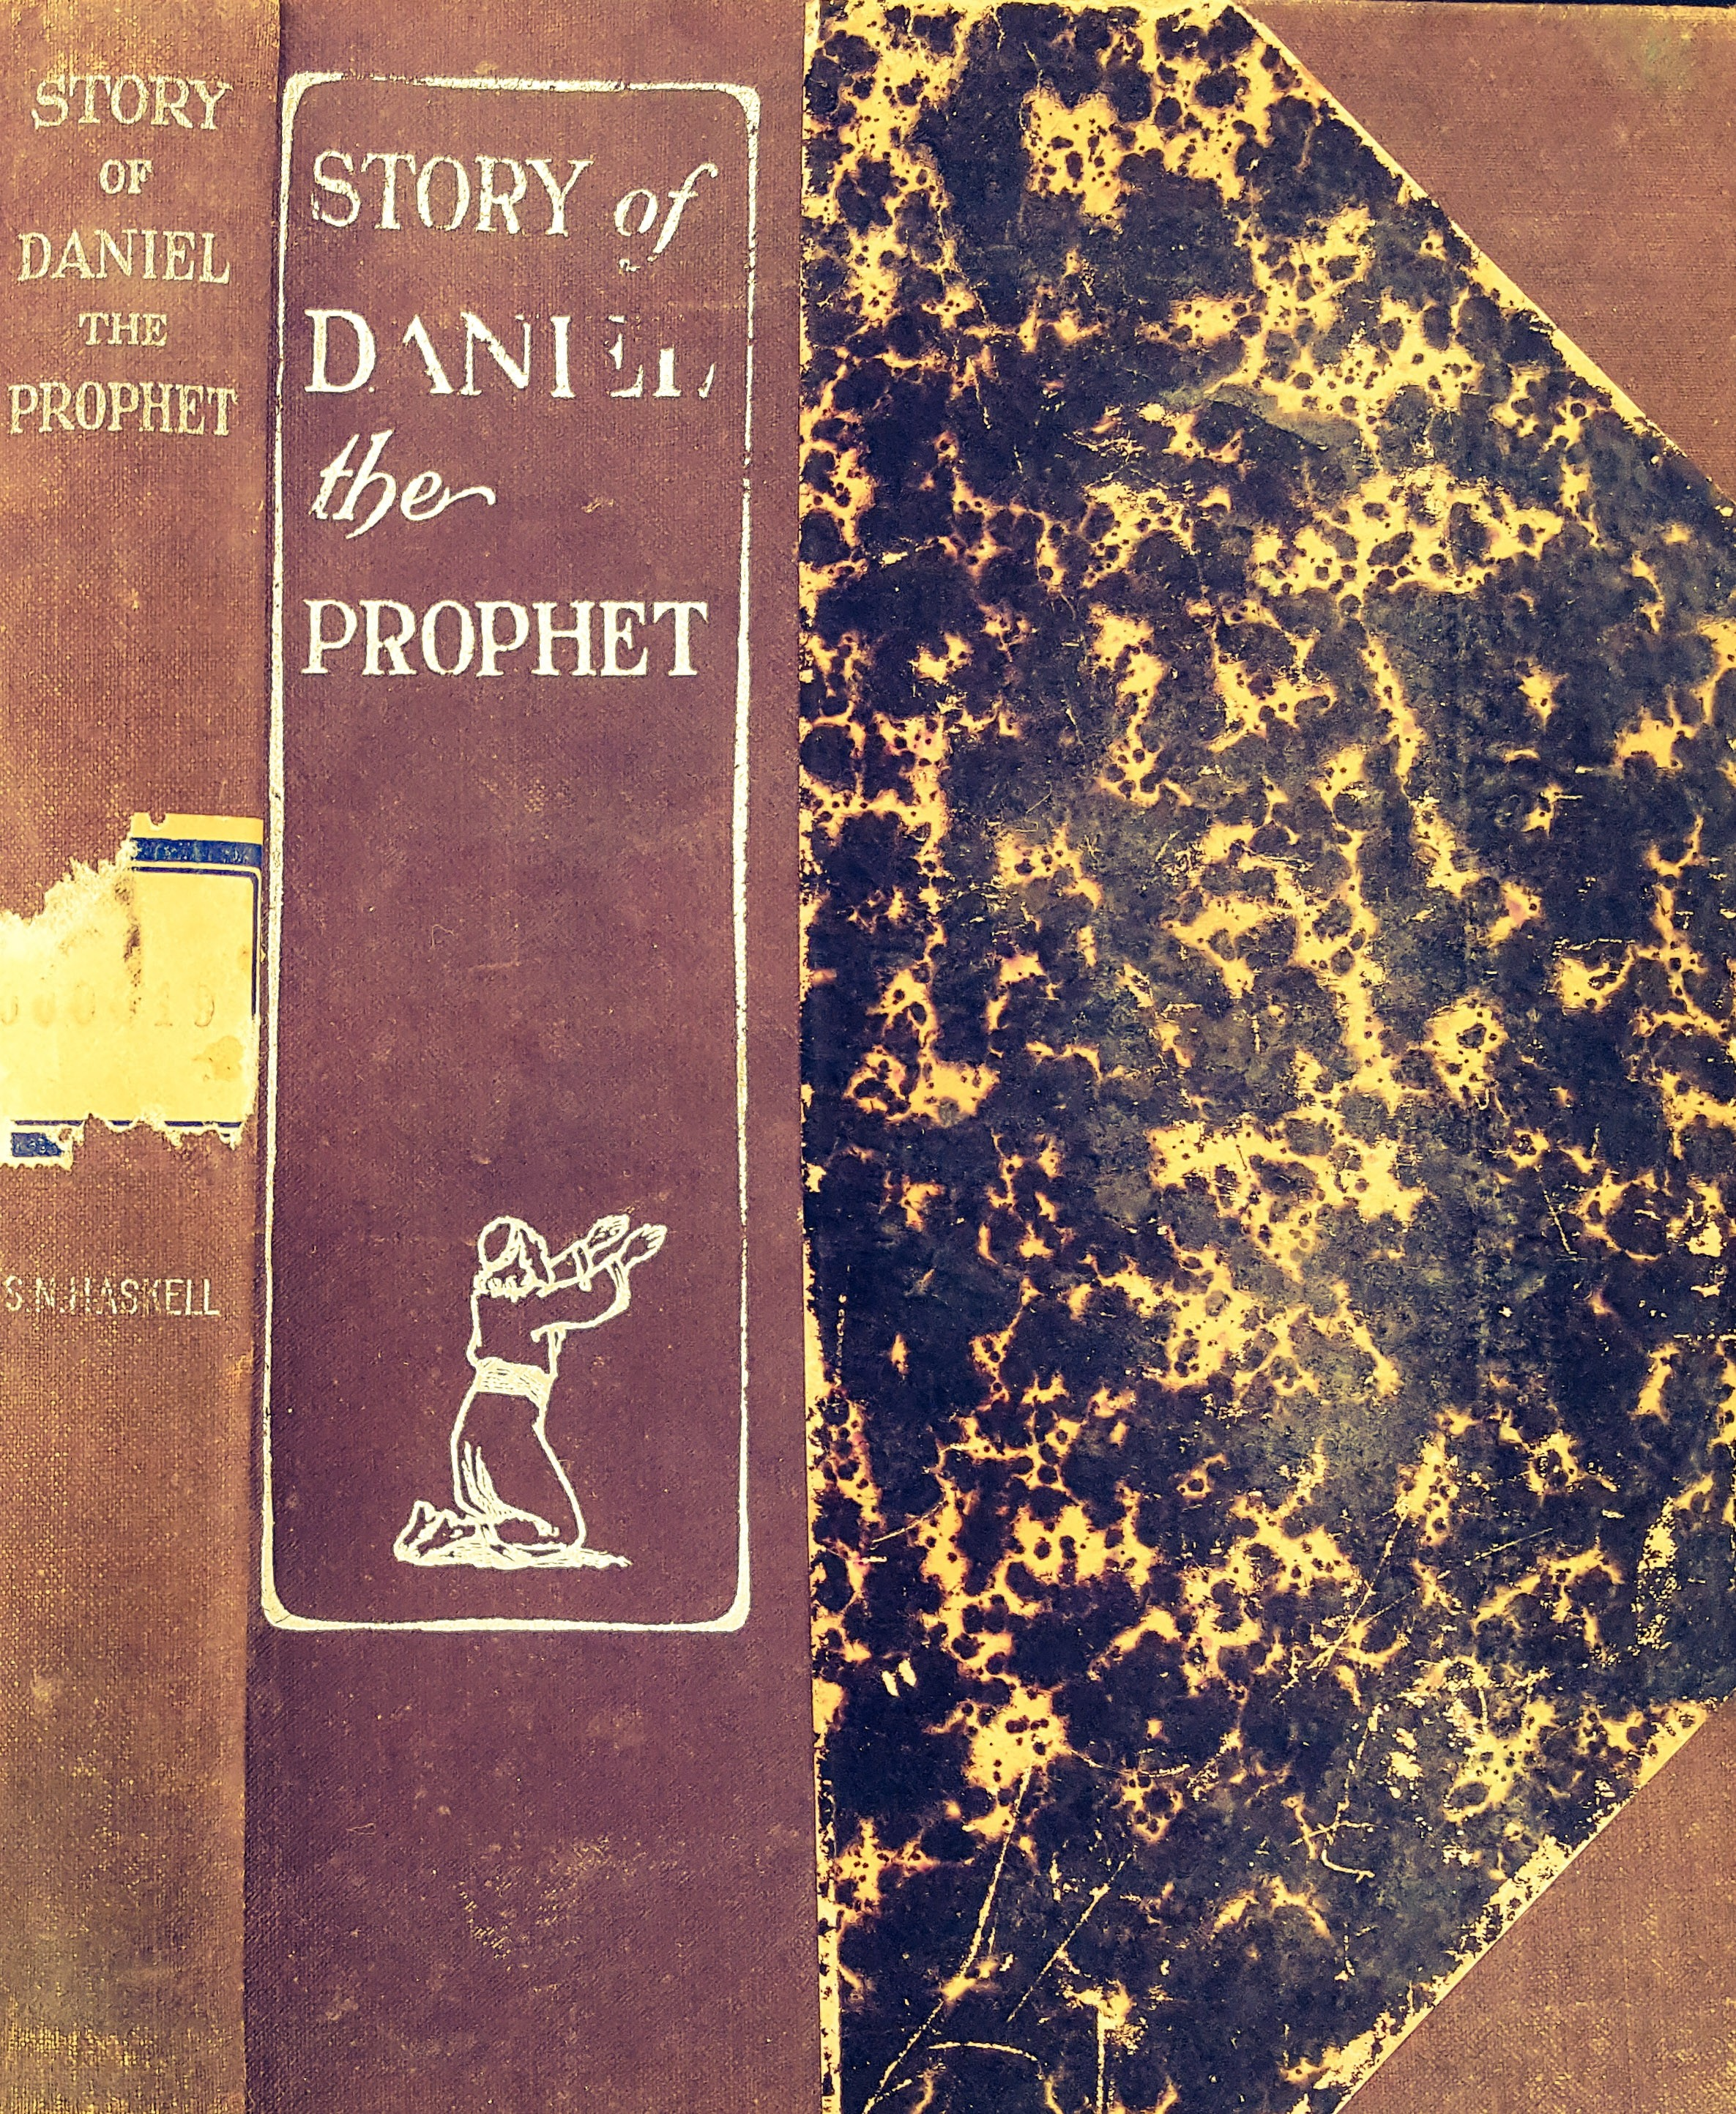 Story of Daniel the Prophet, The